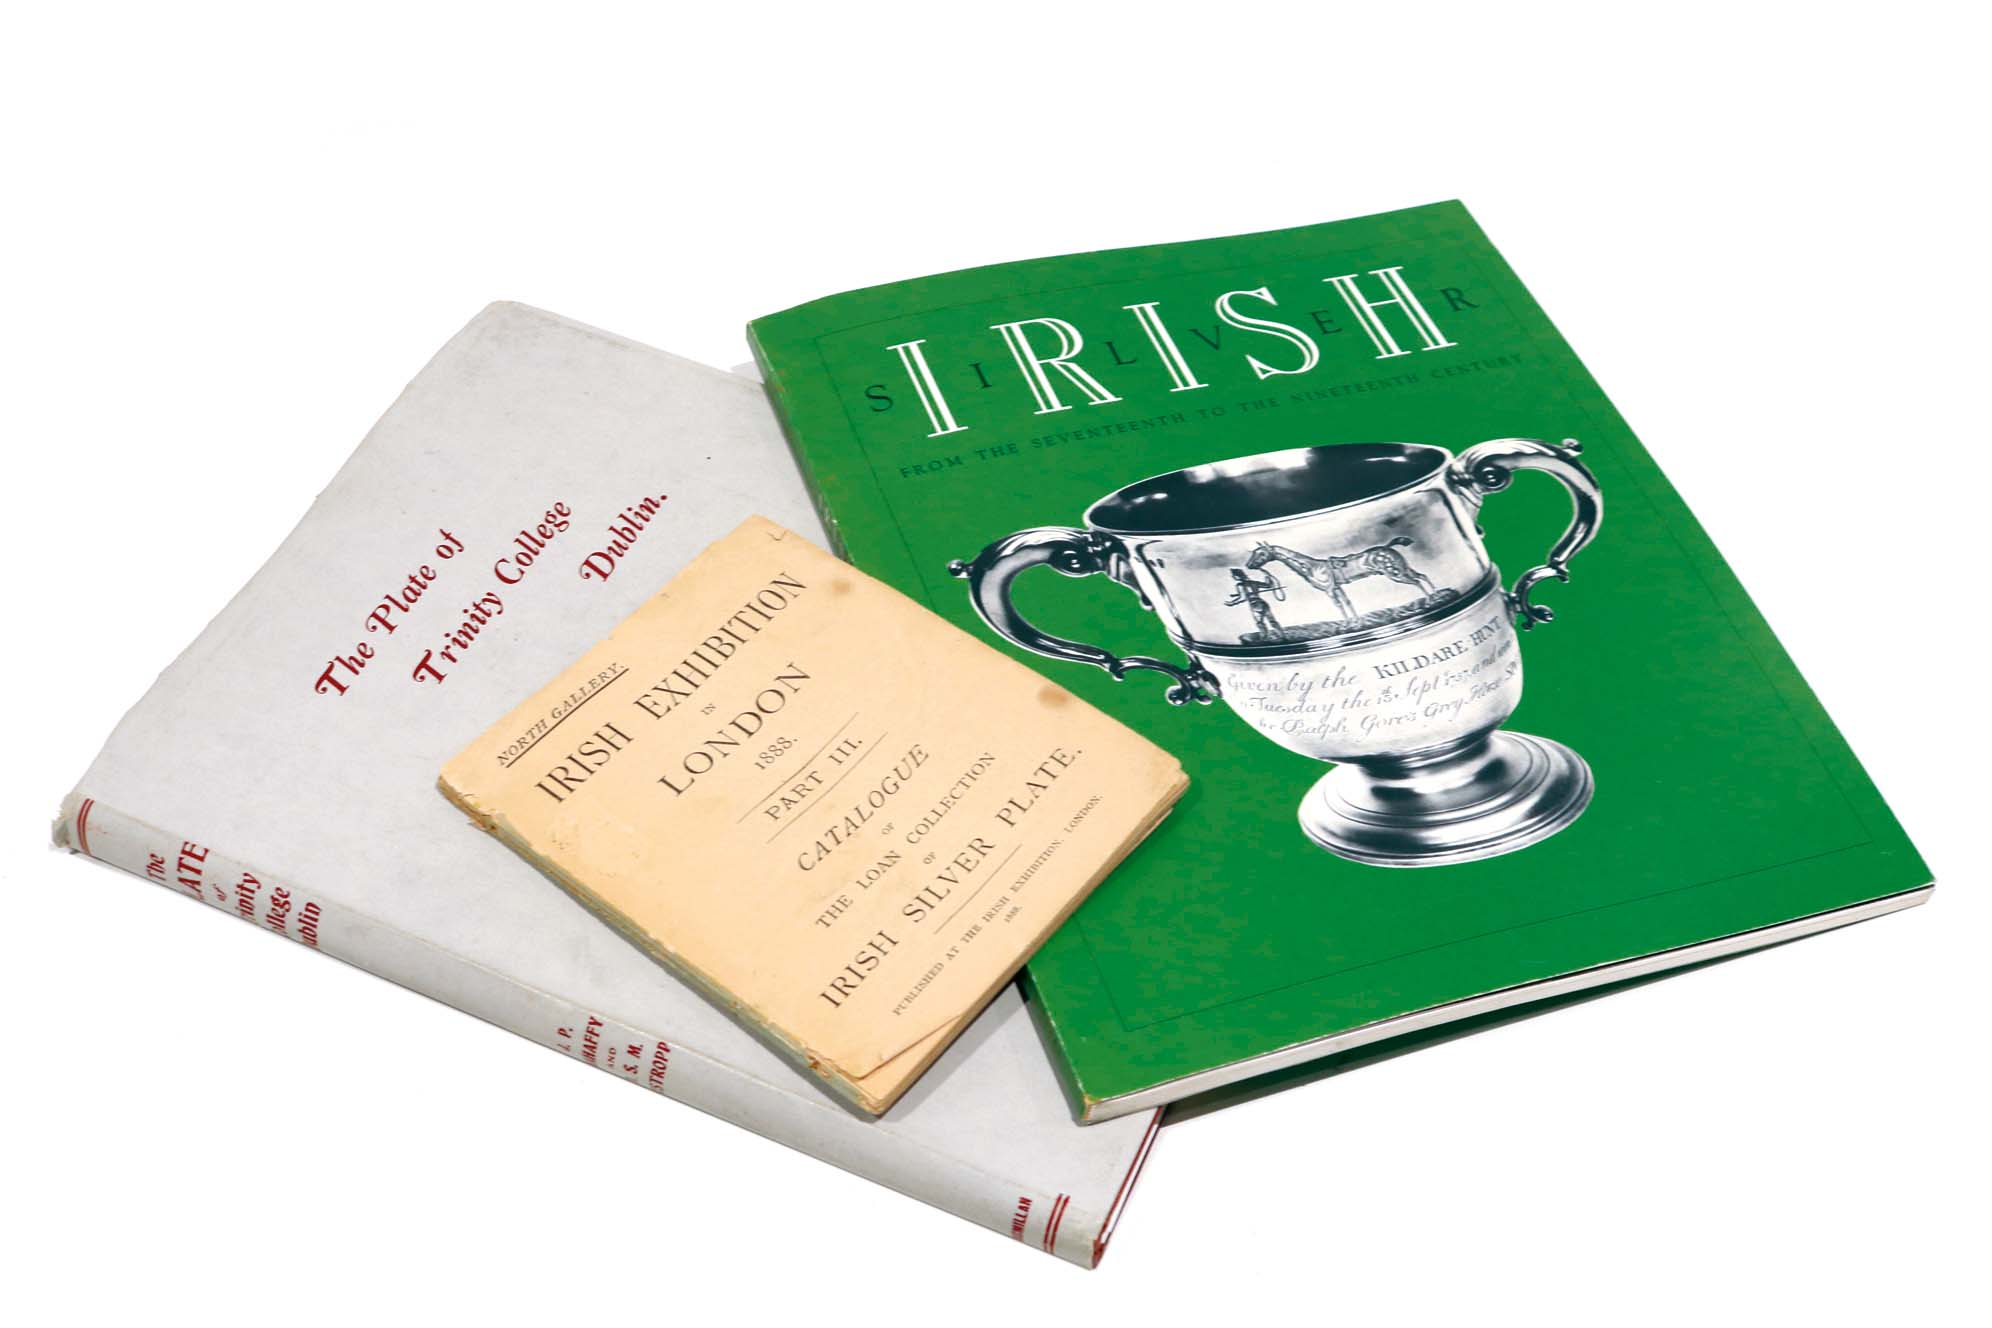 Lot 37 - IRELAND A quantity of literature to include Irish Arts Review Yearbooks, Exhibition Catalogues,